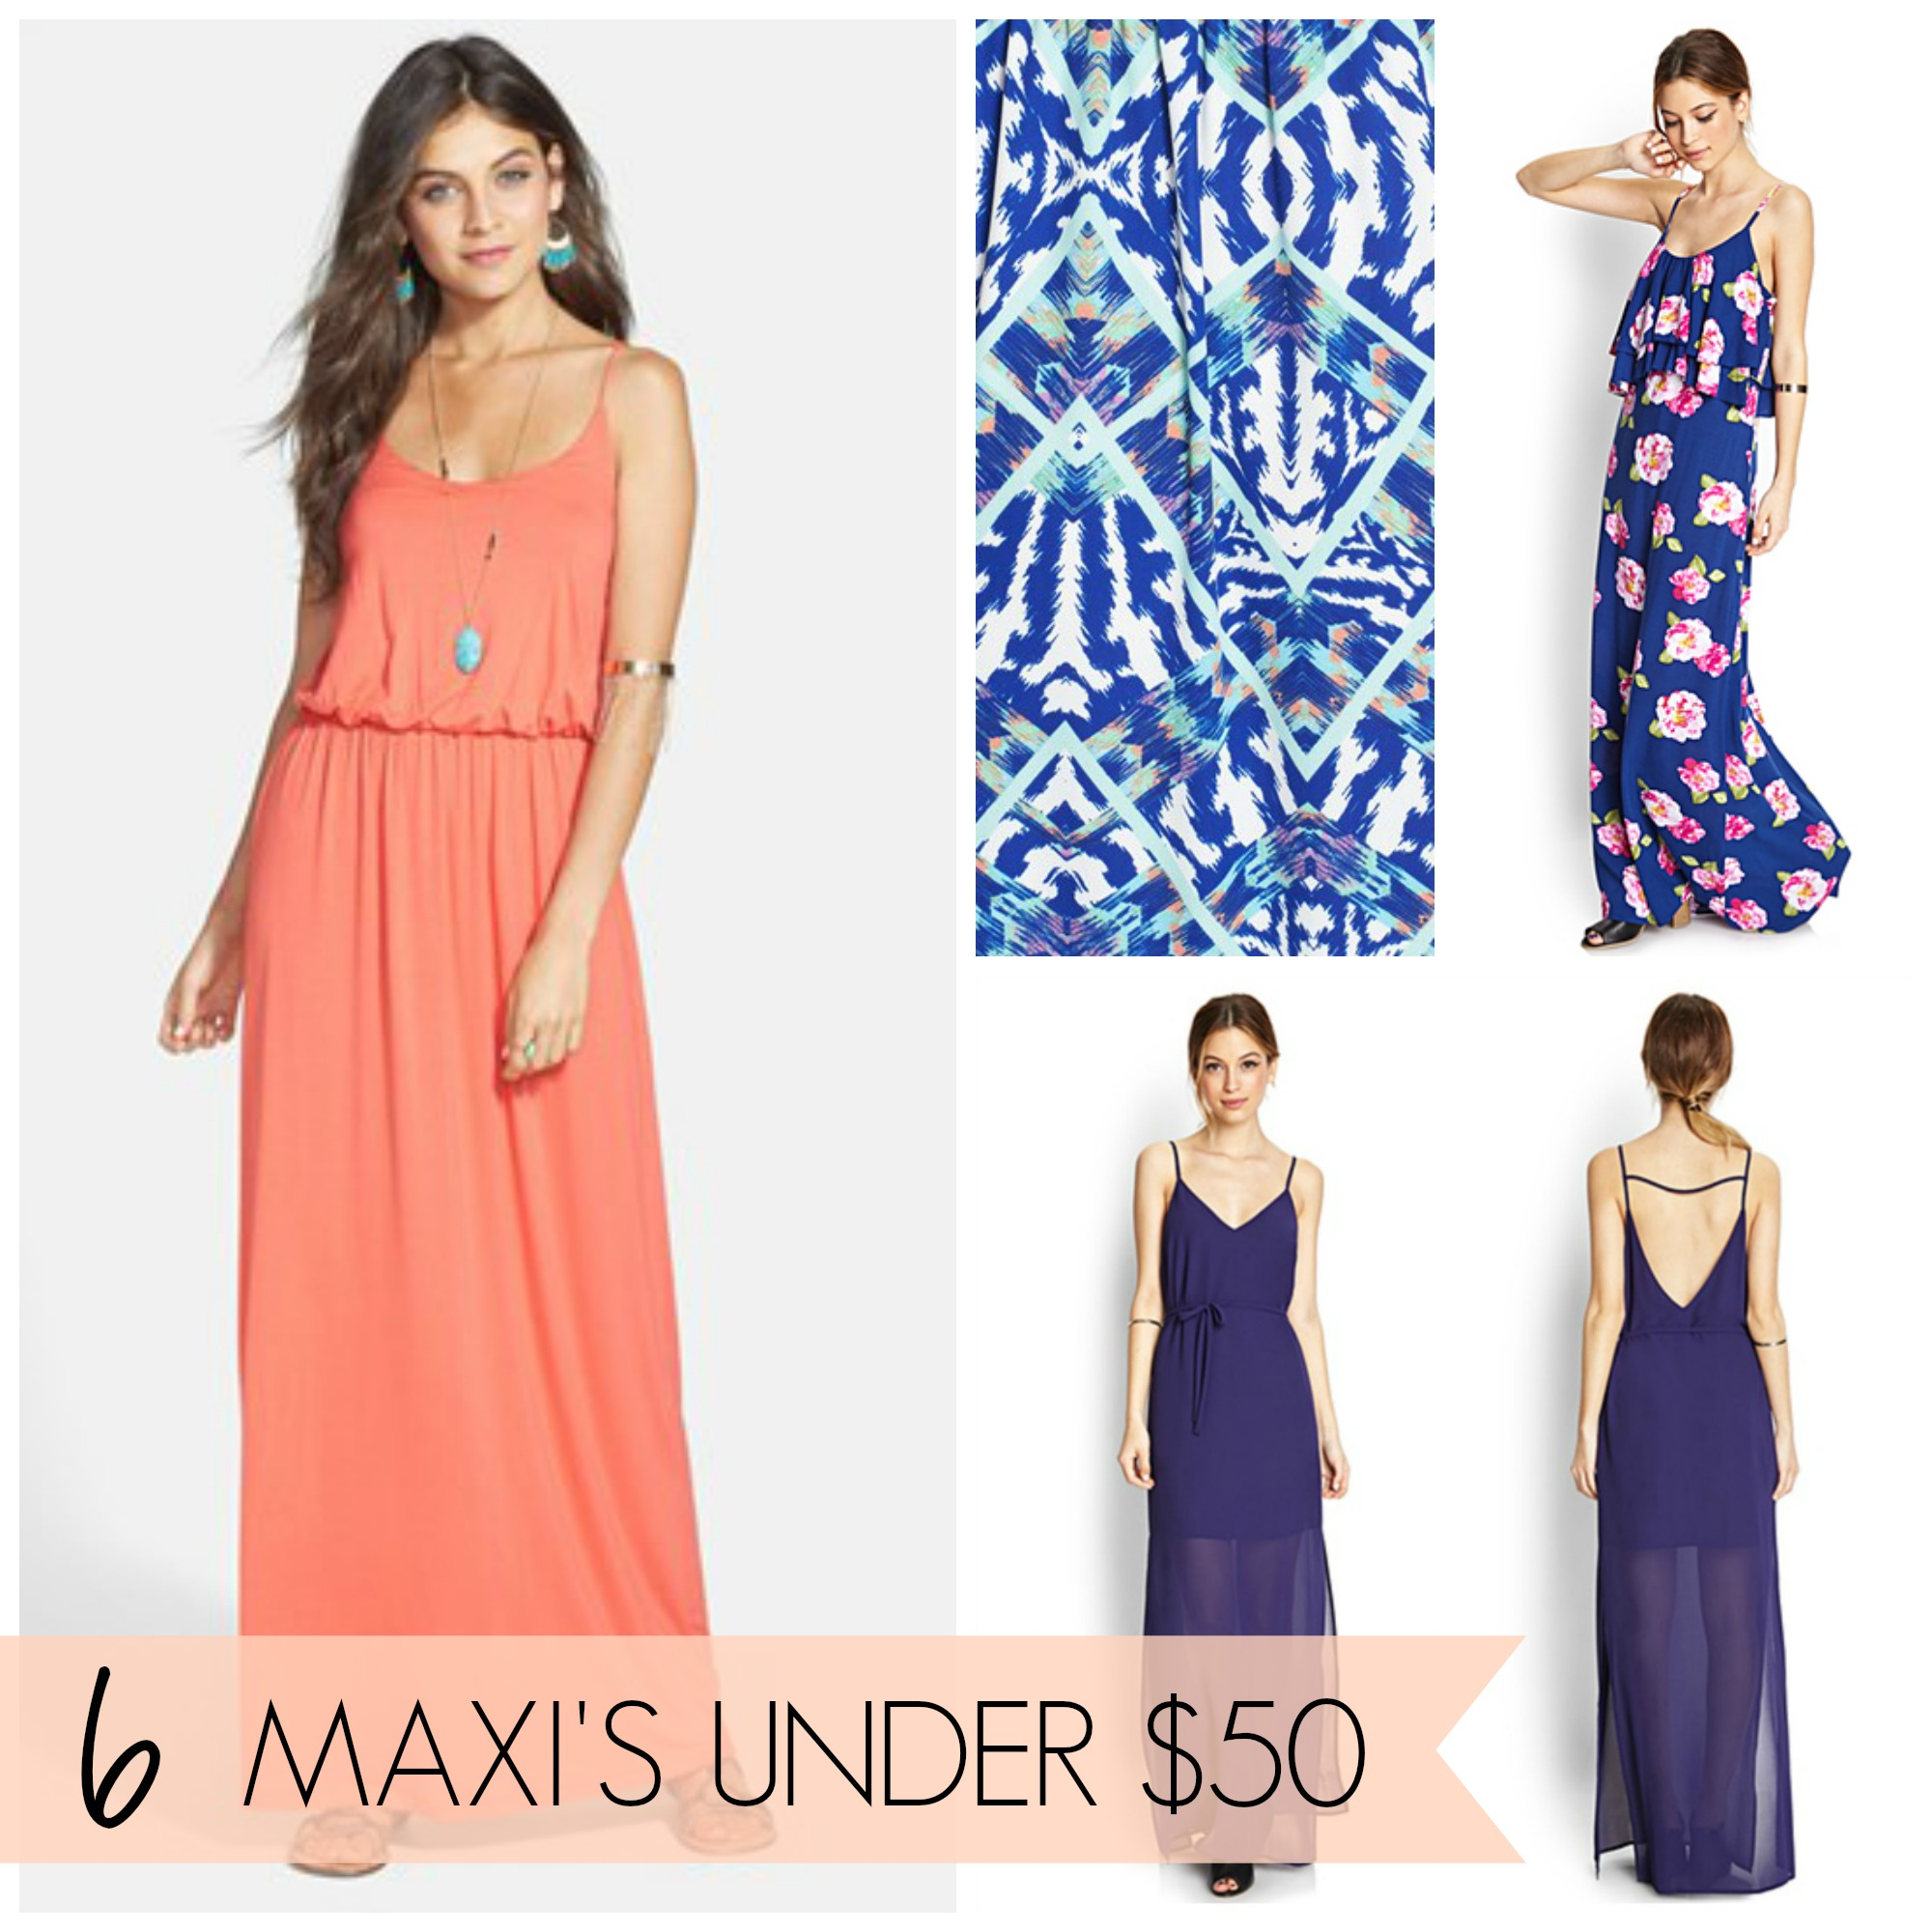 fashion} 6 Perfect Spring Maxi Dresses for under $50 - Creative Juice